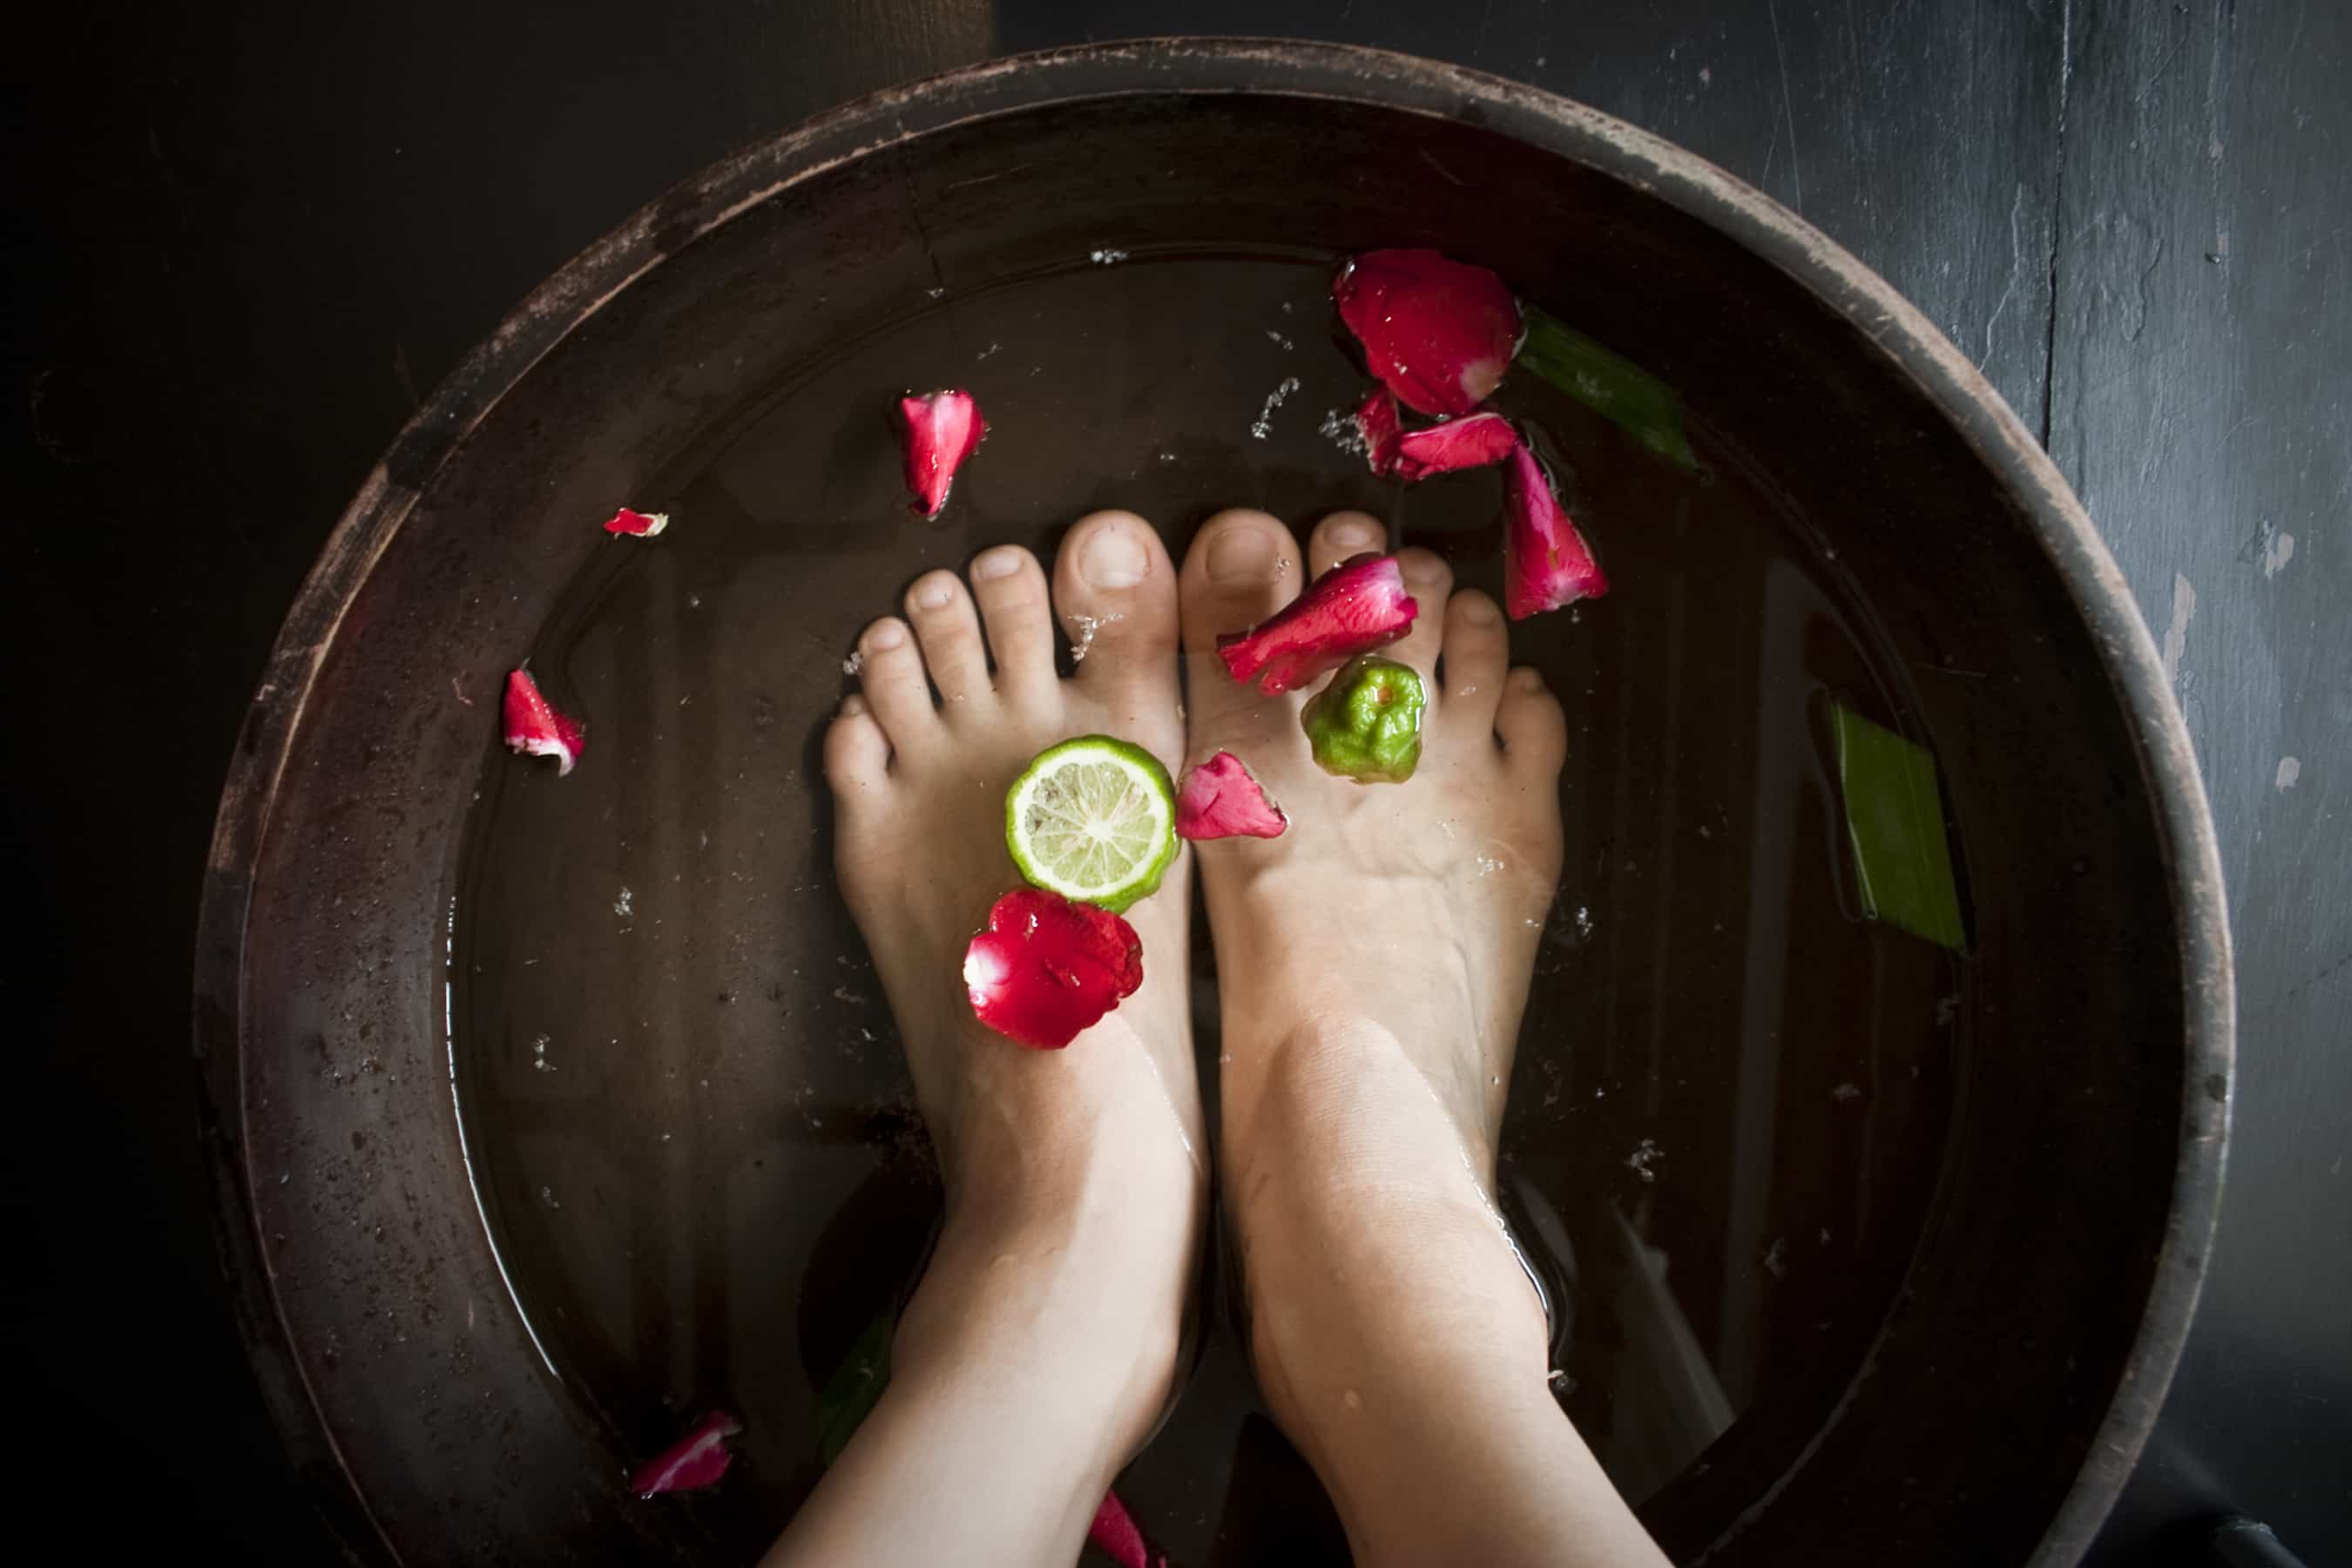 Diy foot bath